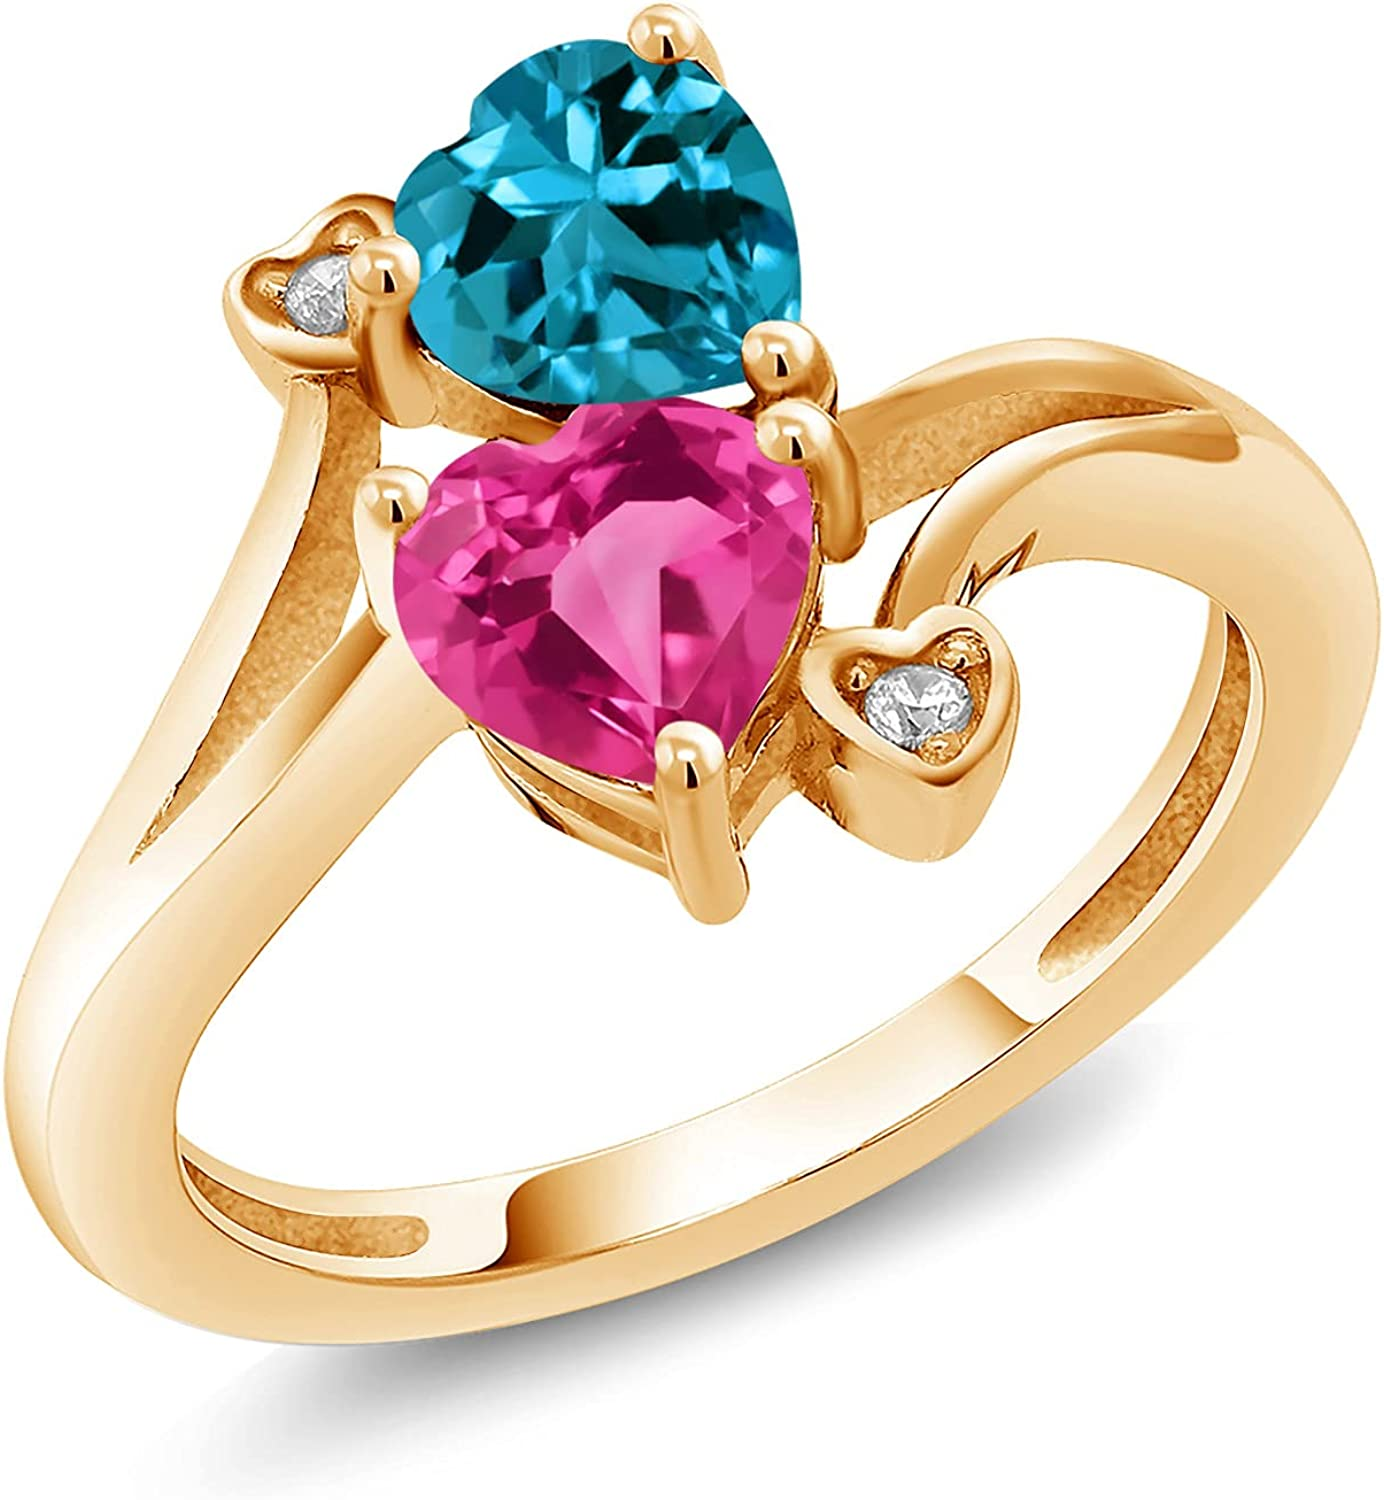 Gem New product! New type Stone King 1.78 Ct London Ye Pink store Sapphire Created 18K Topaz